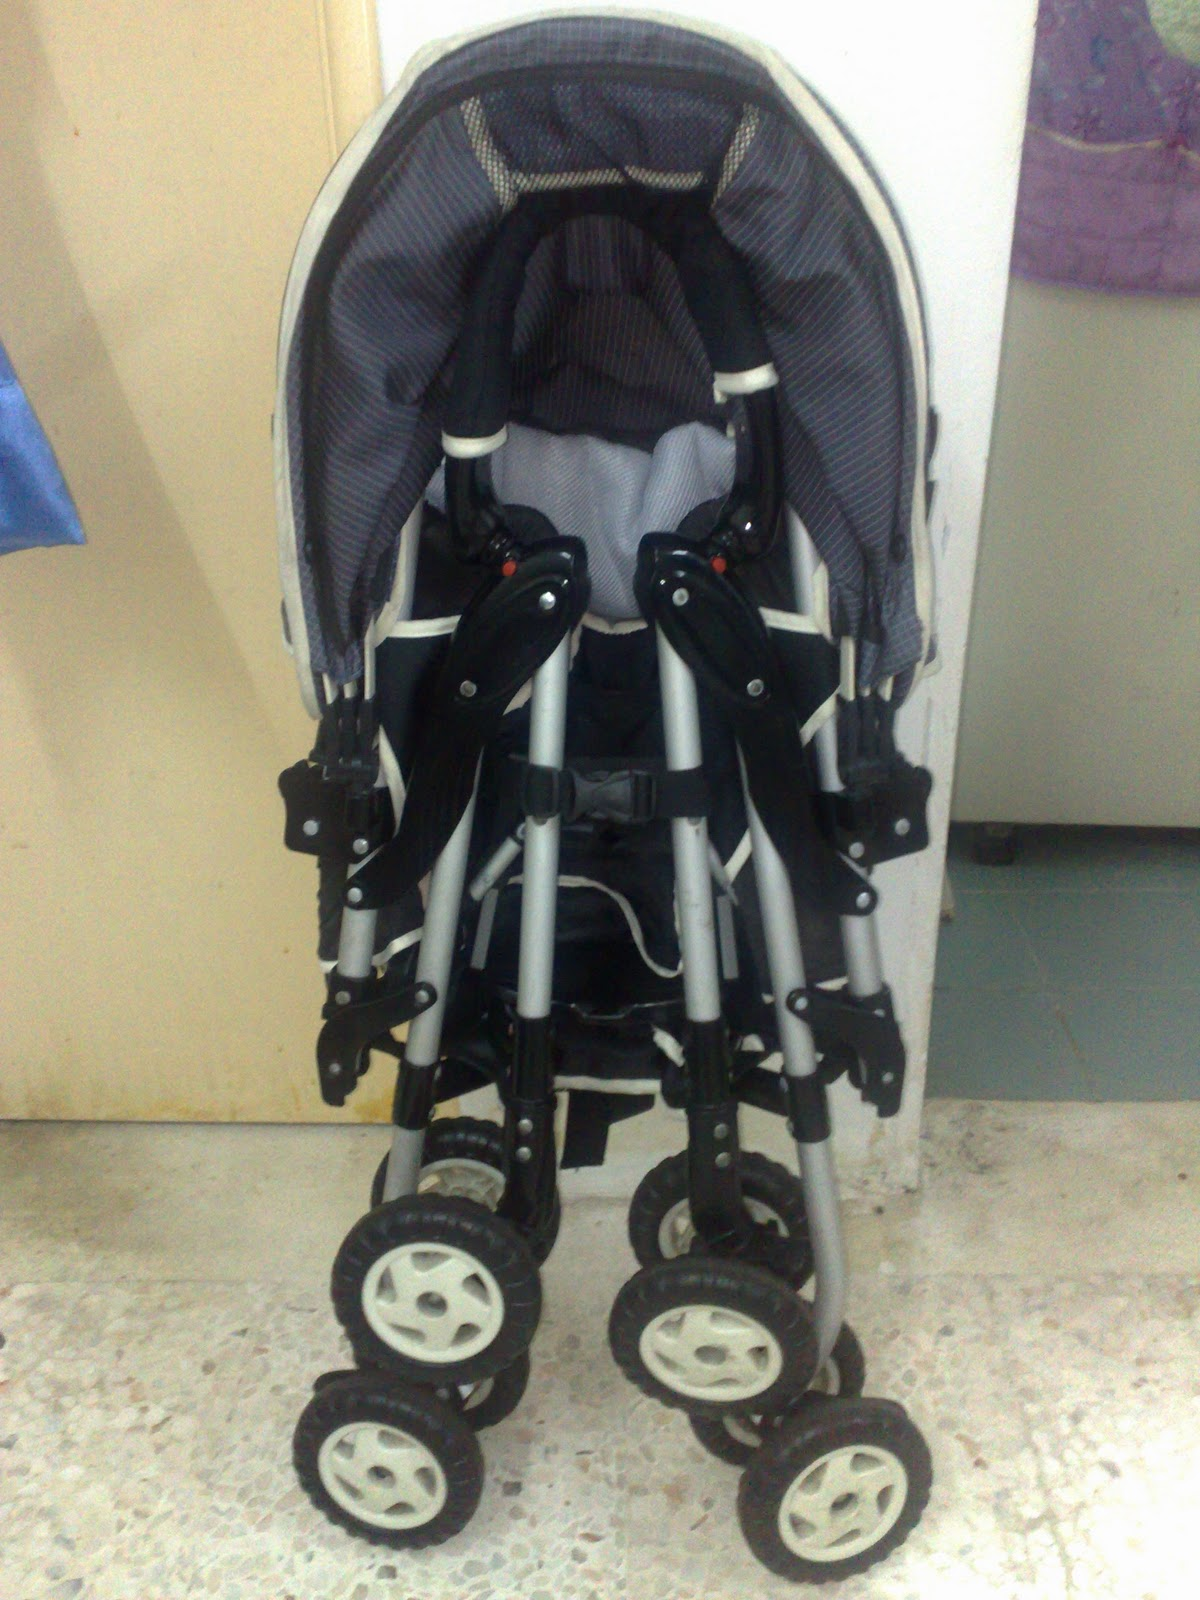 My Peg Perego Car Seat Can Tether